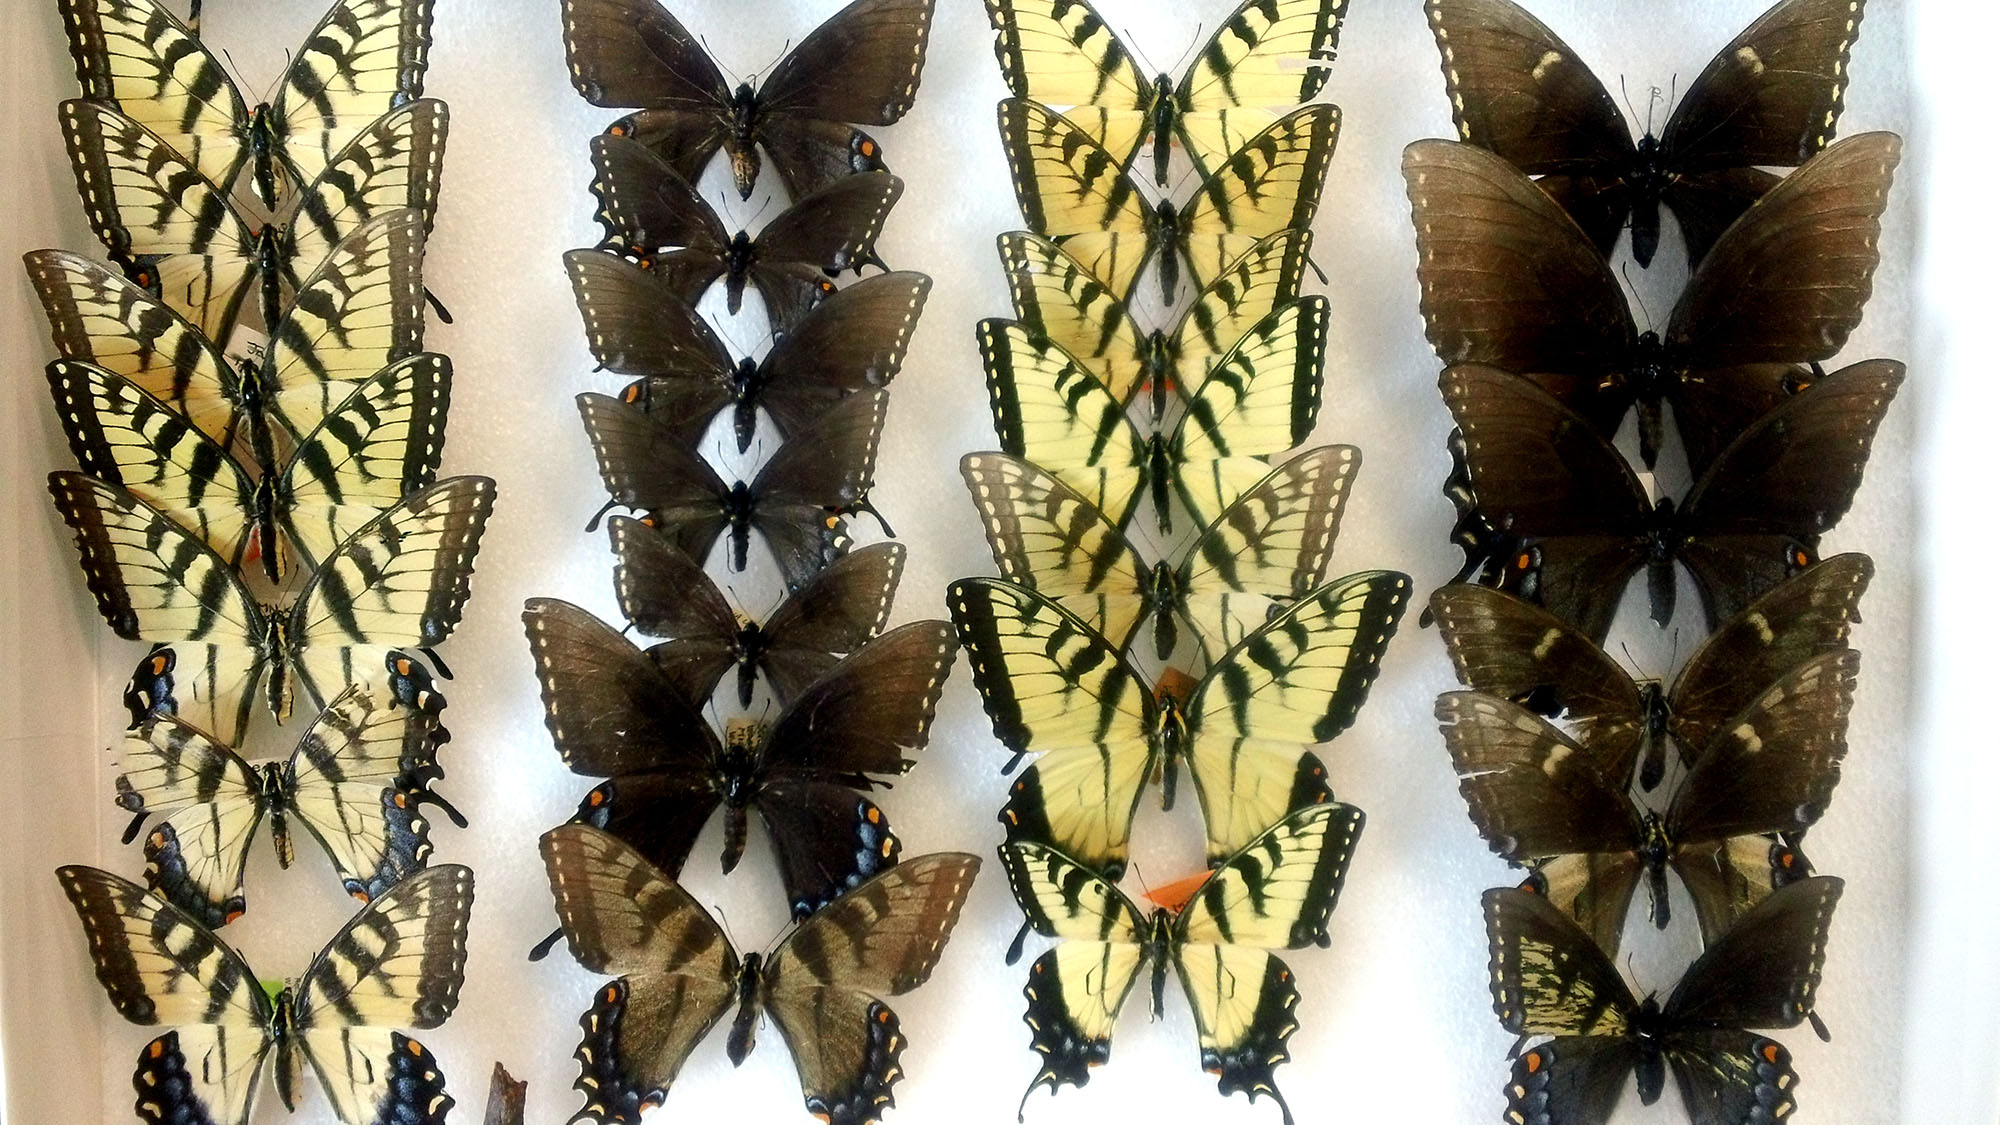 A drawer of eastern tiger swallowtail butterflies at the University of Michigan Museum of Zoology. The butterflies were collected at various locations in the eastern United States. Image credit: Mark O'Brien